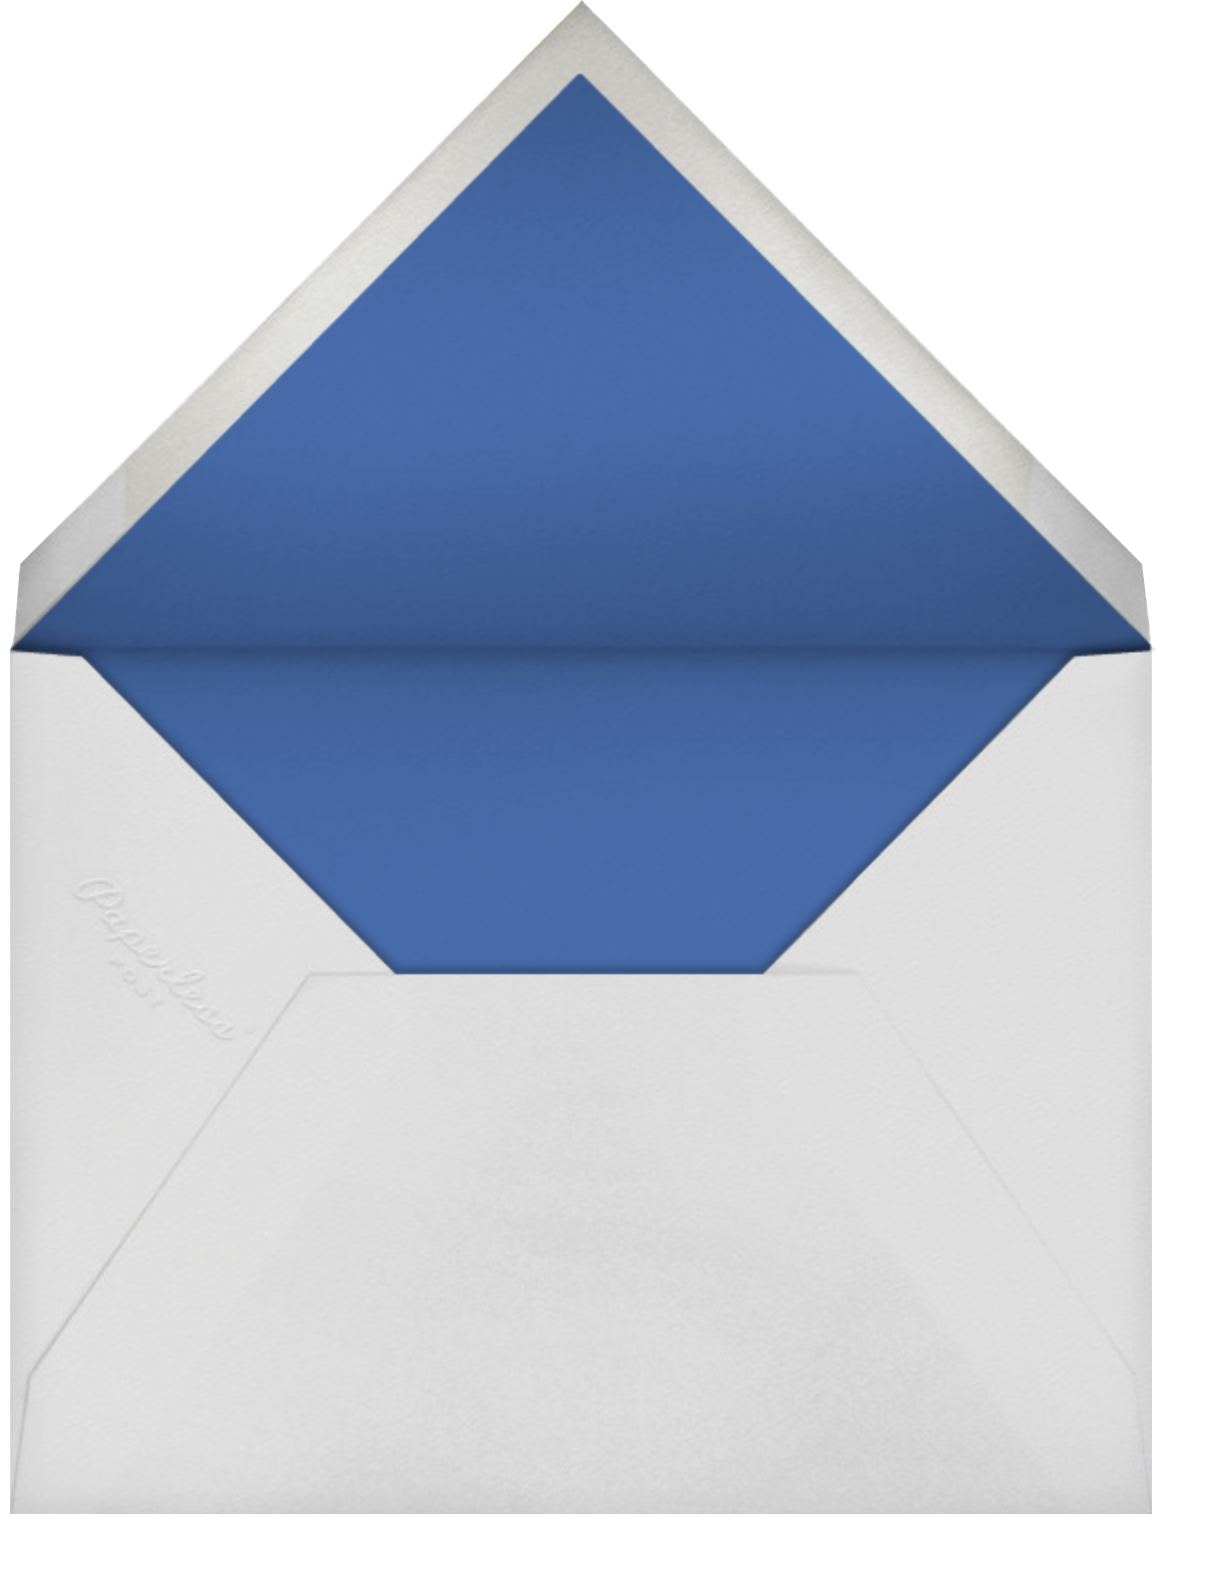 Marchmain (Thank You) - Regent Blue - Paperless Post - Personalized stationery - envelope back